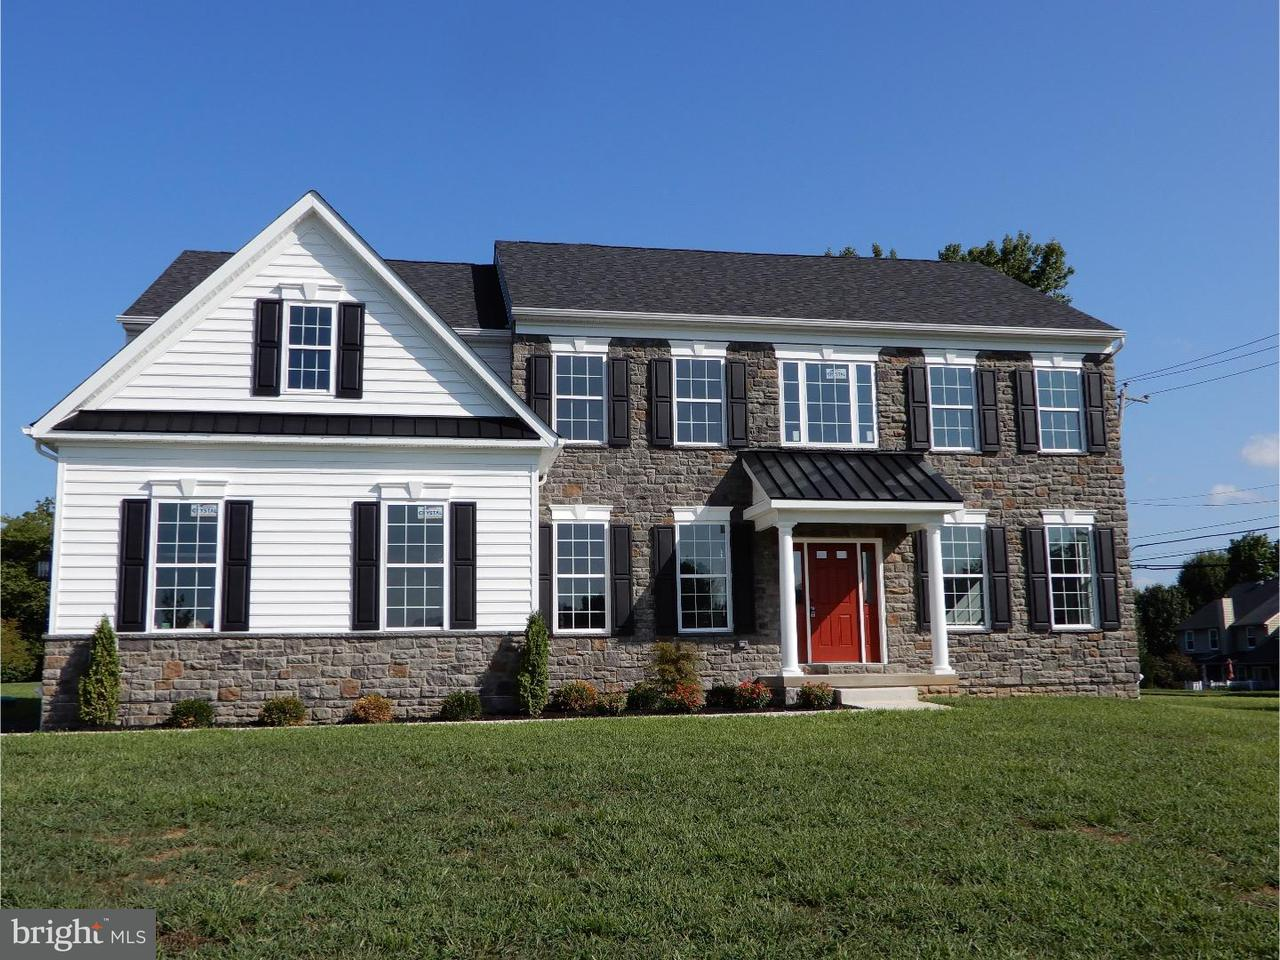 Single Family Home for Sale at 3 QUINN CR Holland, Pennsylvania 18966 United States